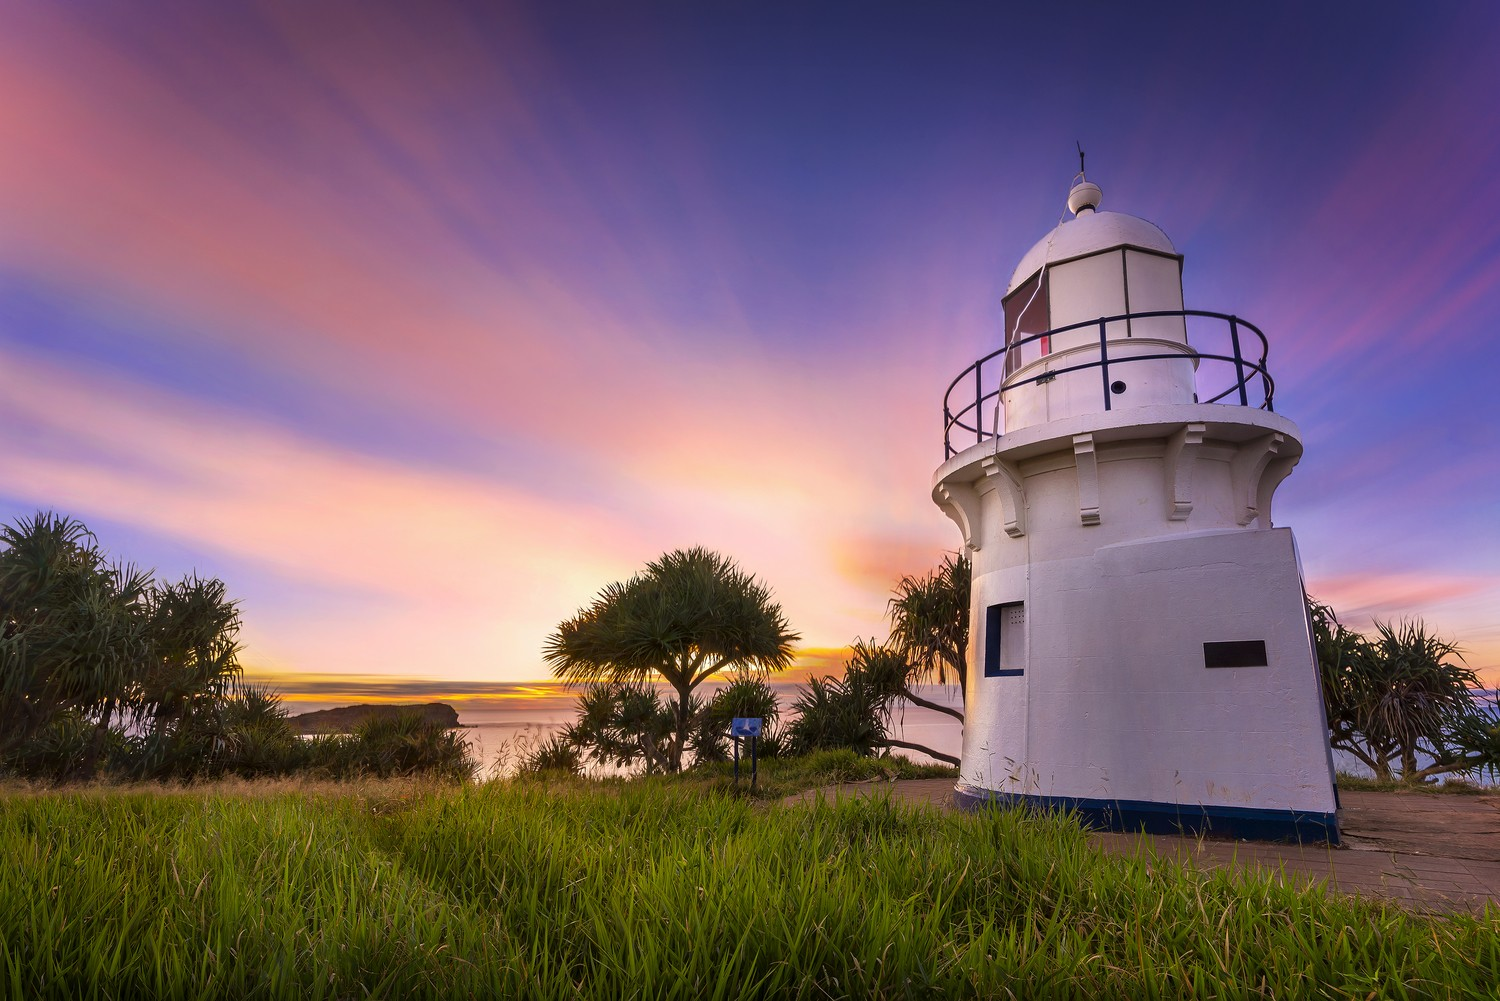 Private Business For Sale Fingal Head 2487 NSW 2